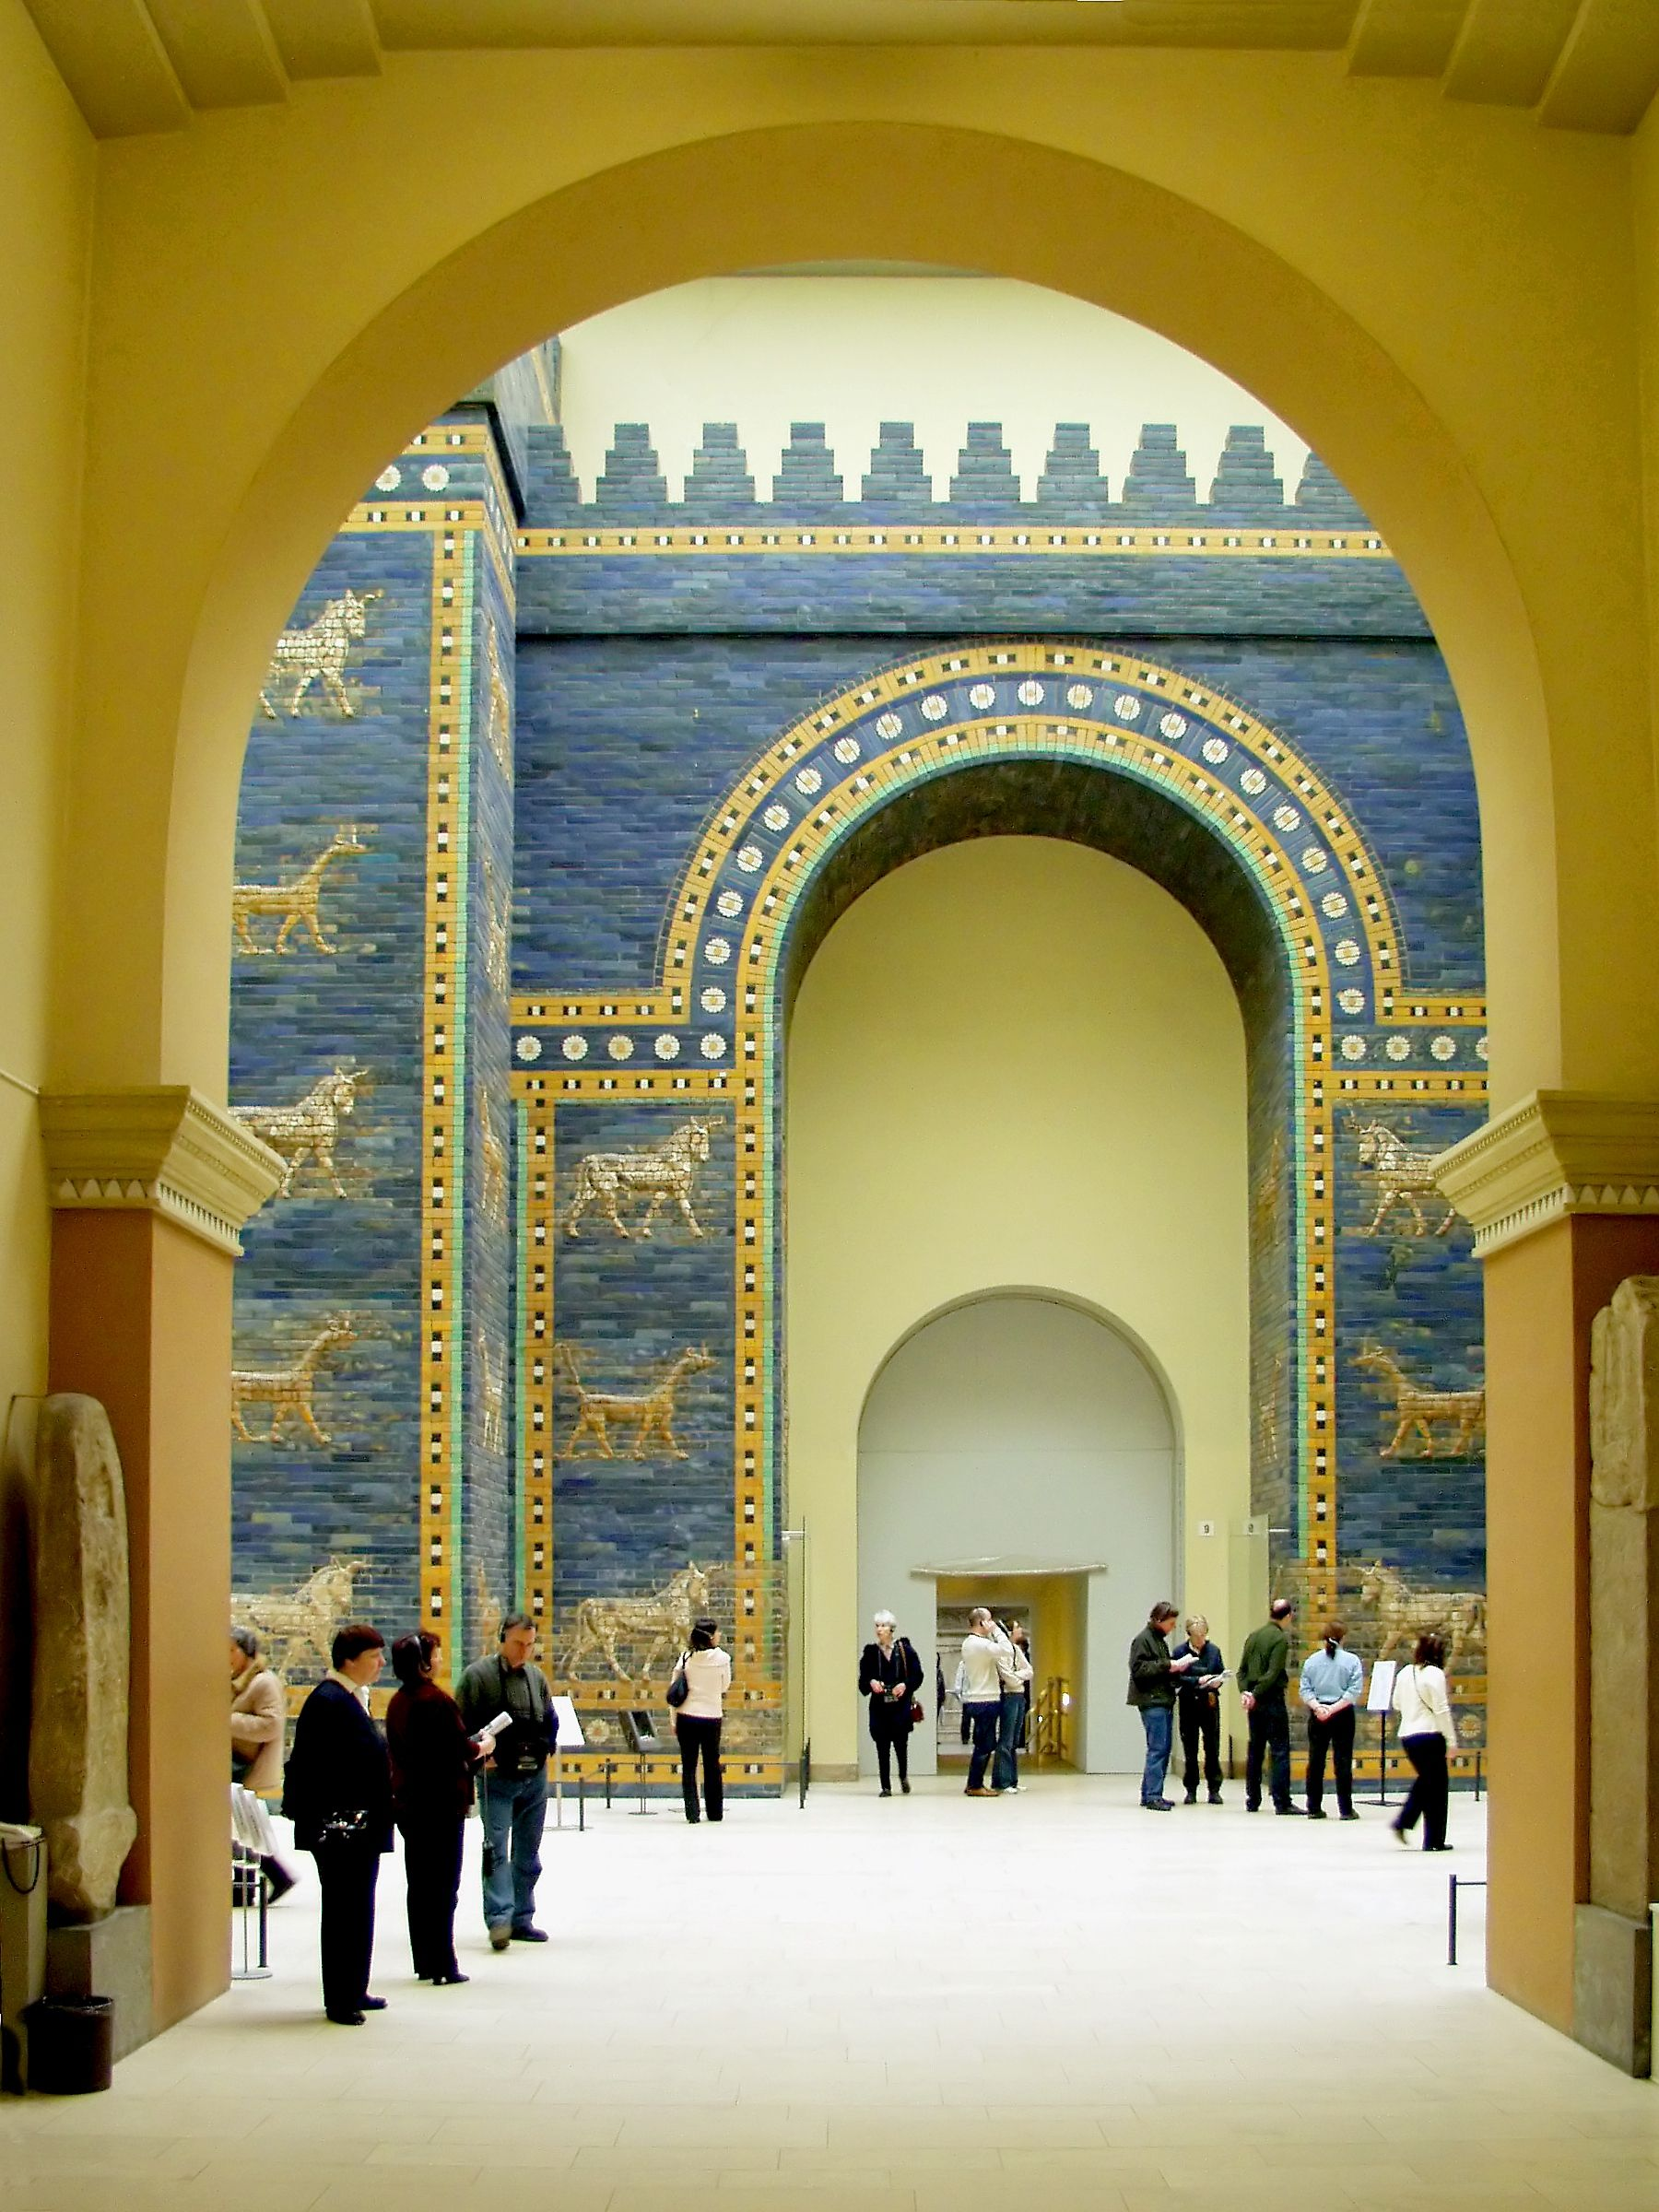 One Of The Ancient Seven Wonders Of The World The Ishtar Gate In The Pergamon Museum In Berlin Germany Ischtar Tor Berlin Berlin Stadt